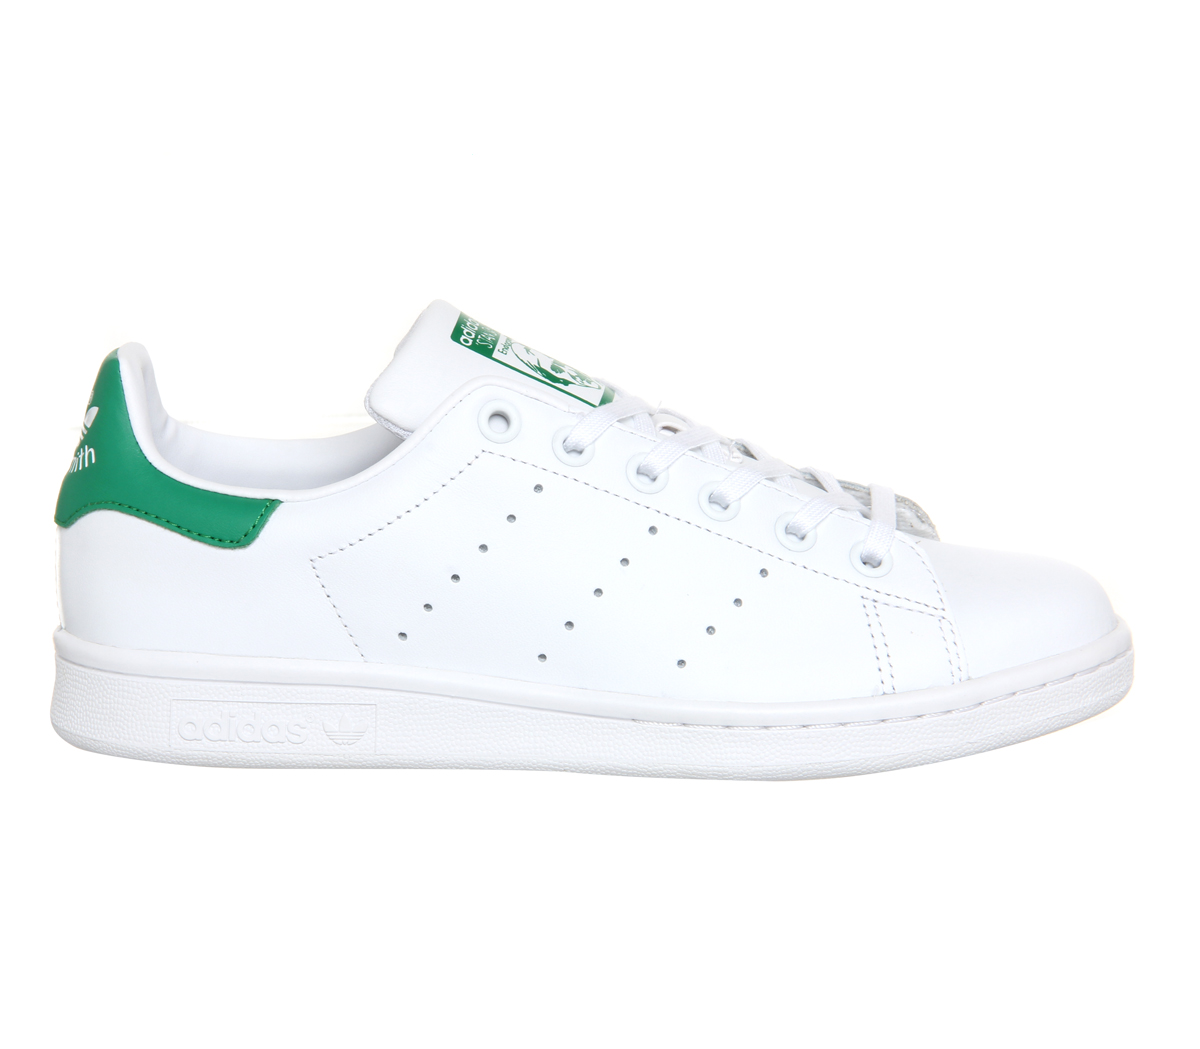 Sentinel Mens Adidas Stan Smith Trainers Core White Green Trainers Shoes 7ac7439ec